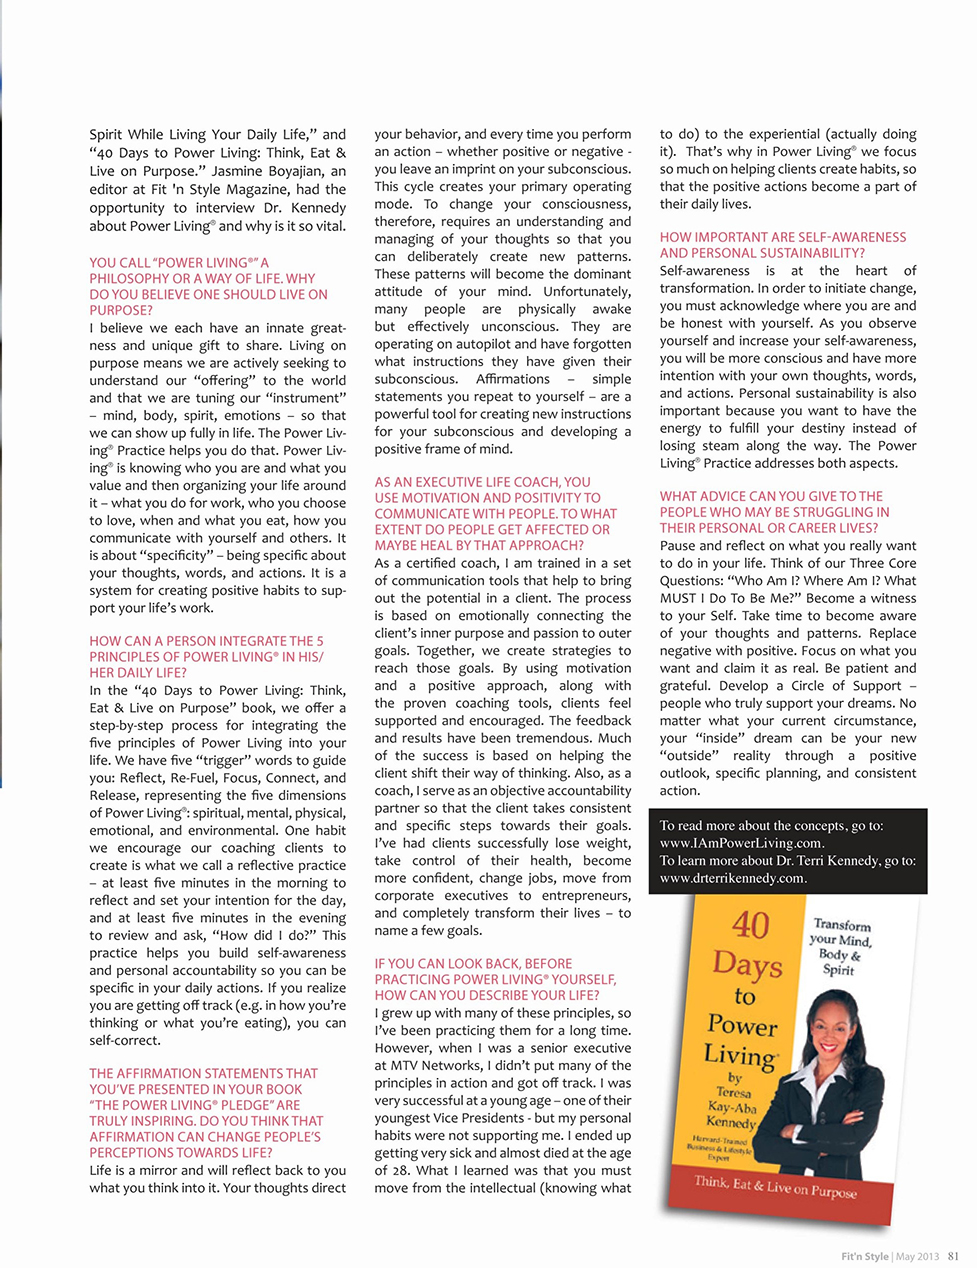 Teresa Kay-Aba Kennedy featured in Fit N'Style Magazine in Lebanon